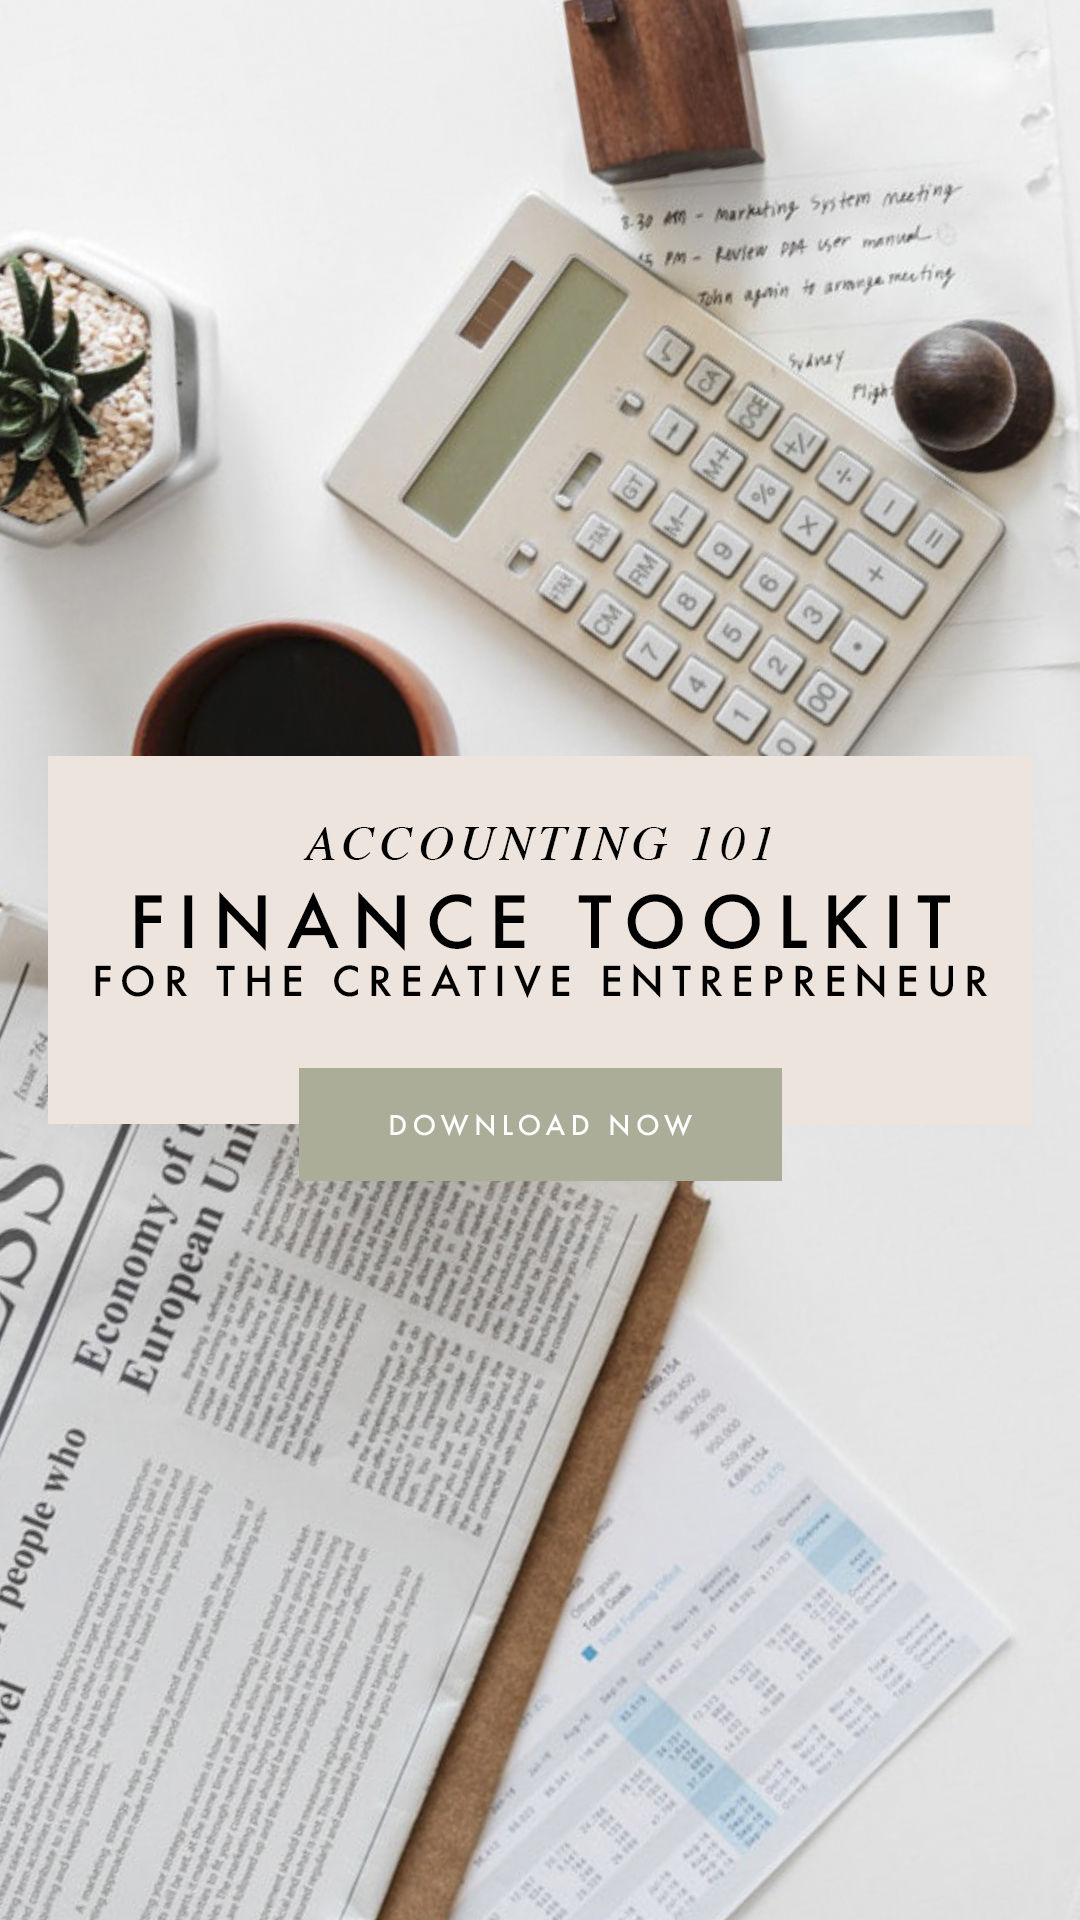 Finance Toolkit for the Creative Entrepreneur